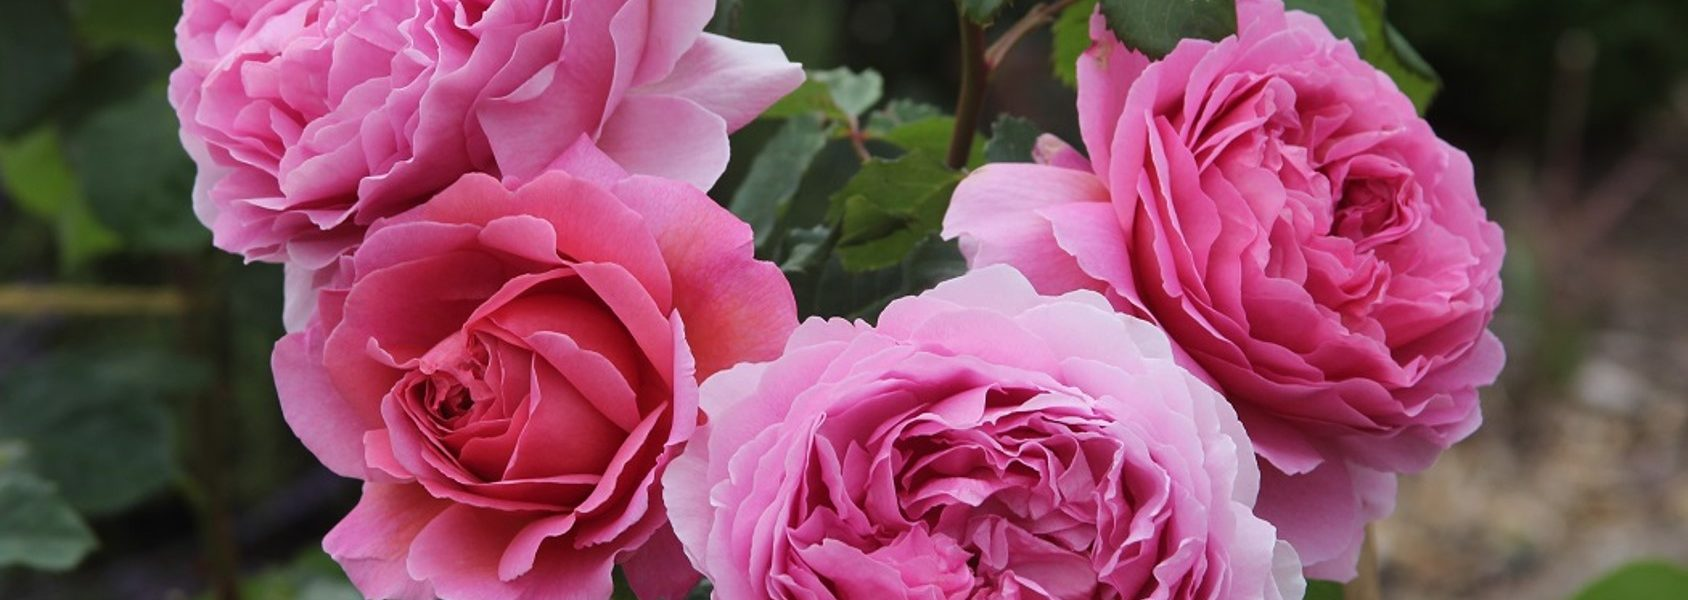 princess alexandra of kent rose review the right roses score best top garden store david austin english roses rose products rose rating the right leap rose food